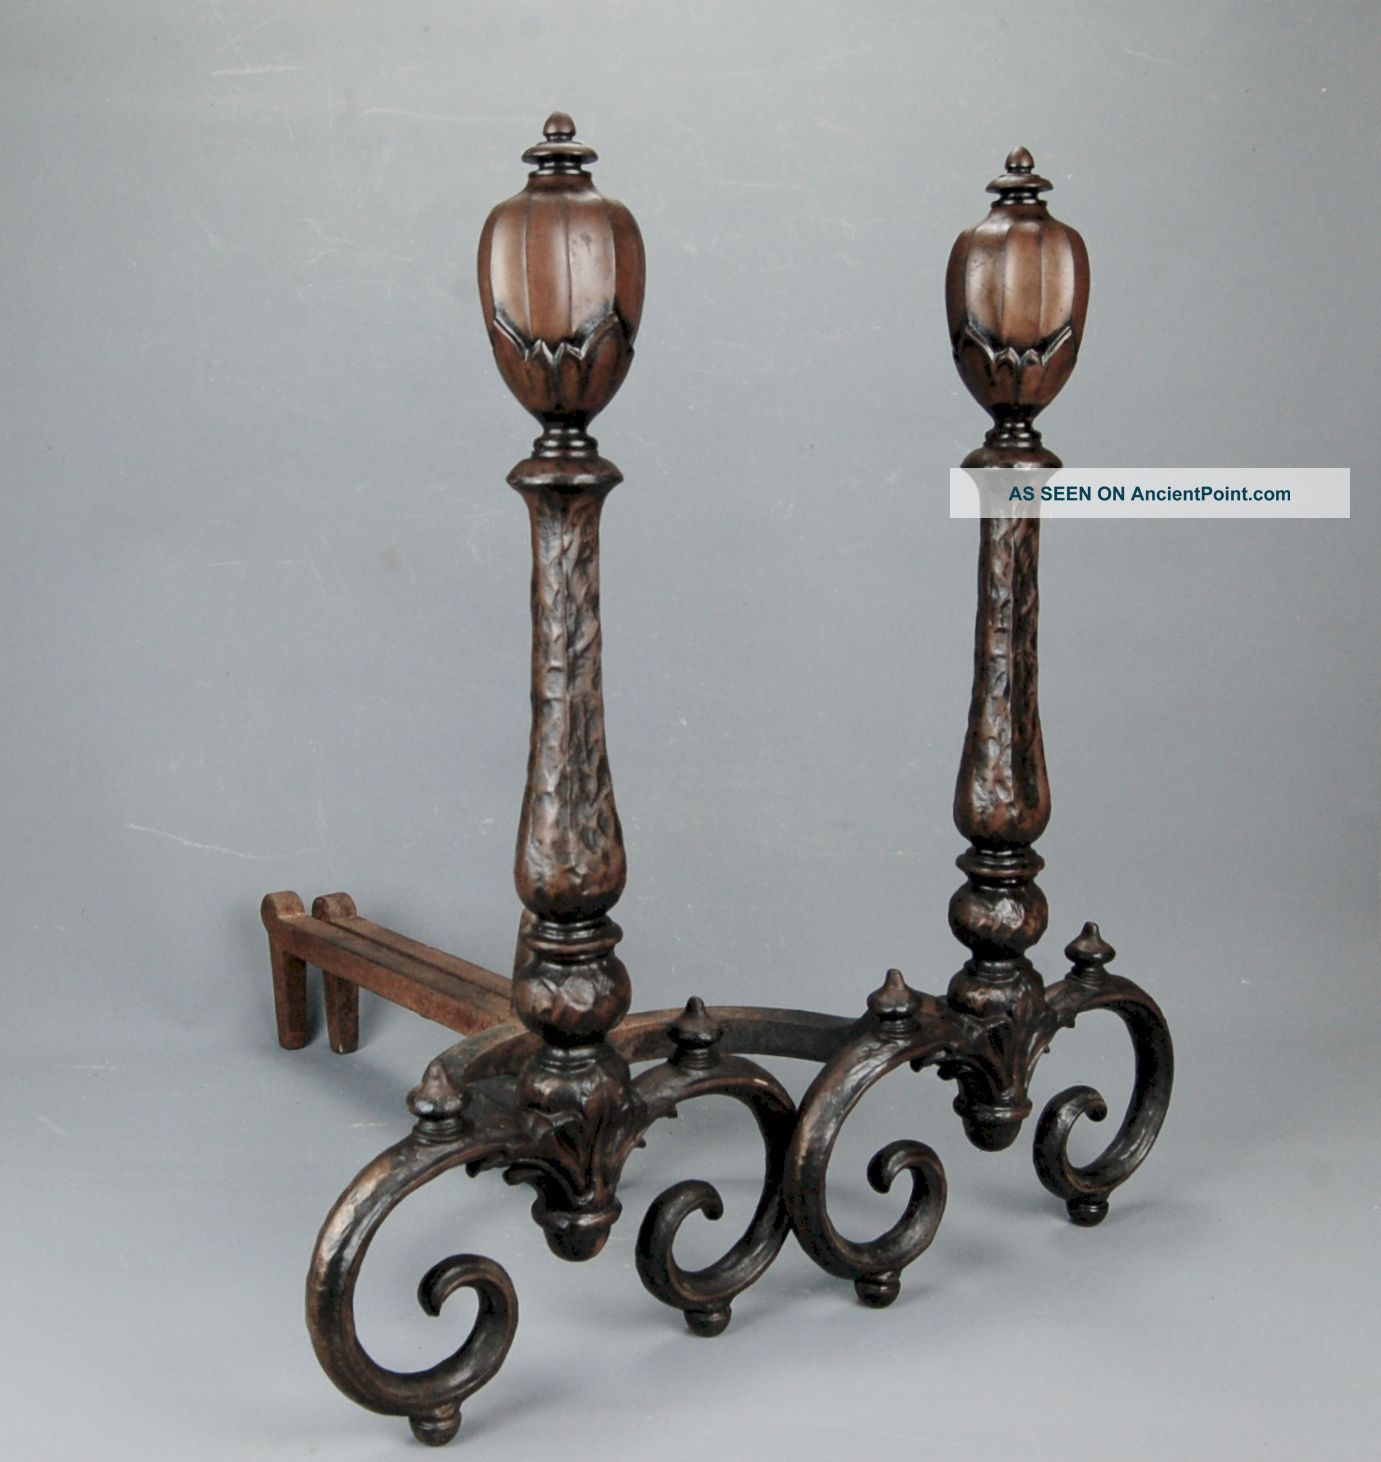 Antique Victorian Hammered Cast Iron Fireplace Andirons Bradley & Hubbard 1880s Hearth Ware photo